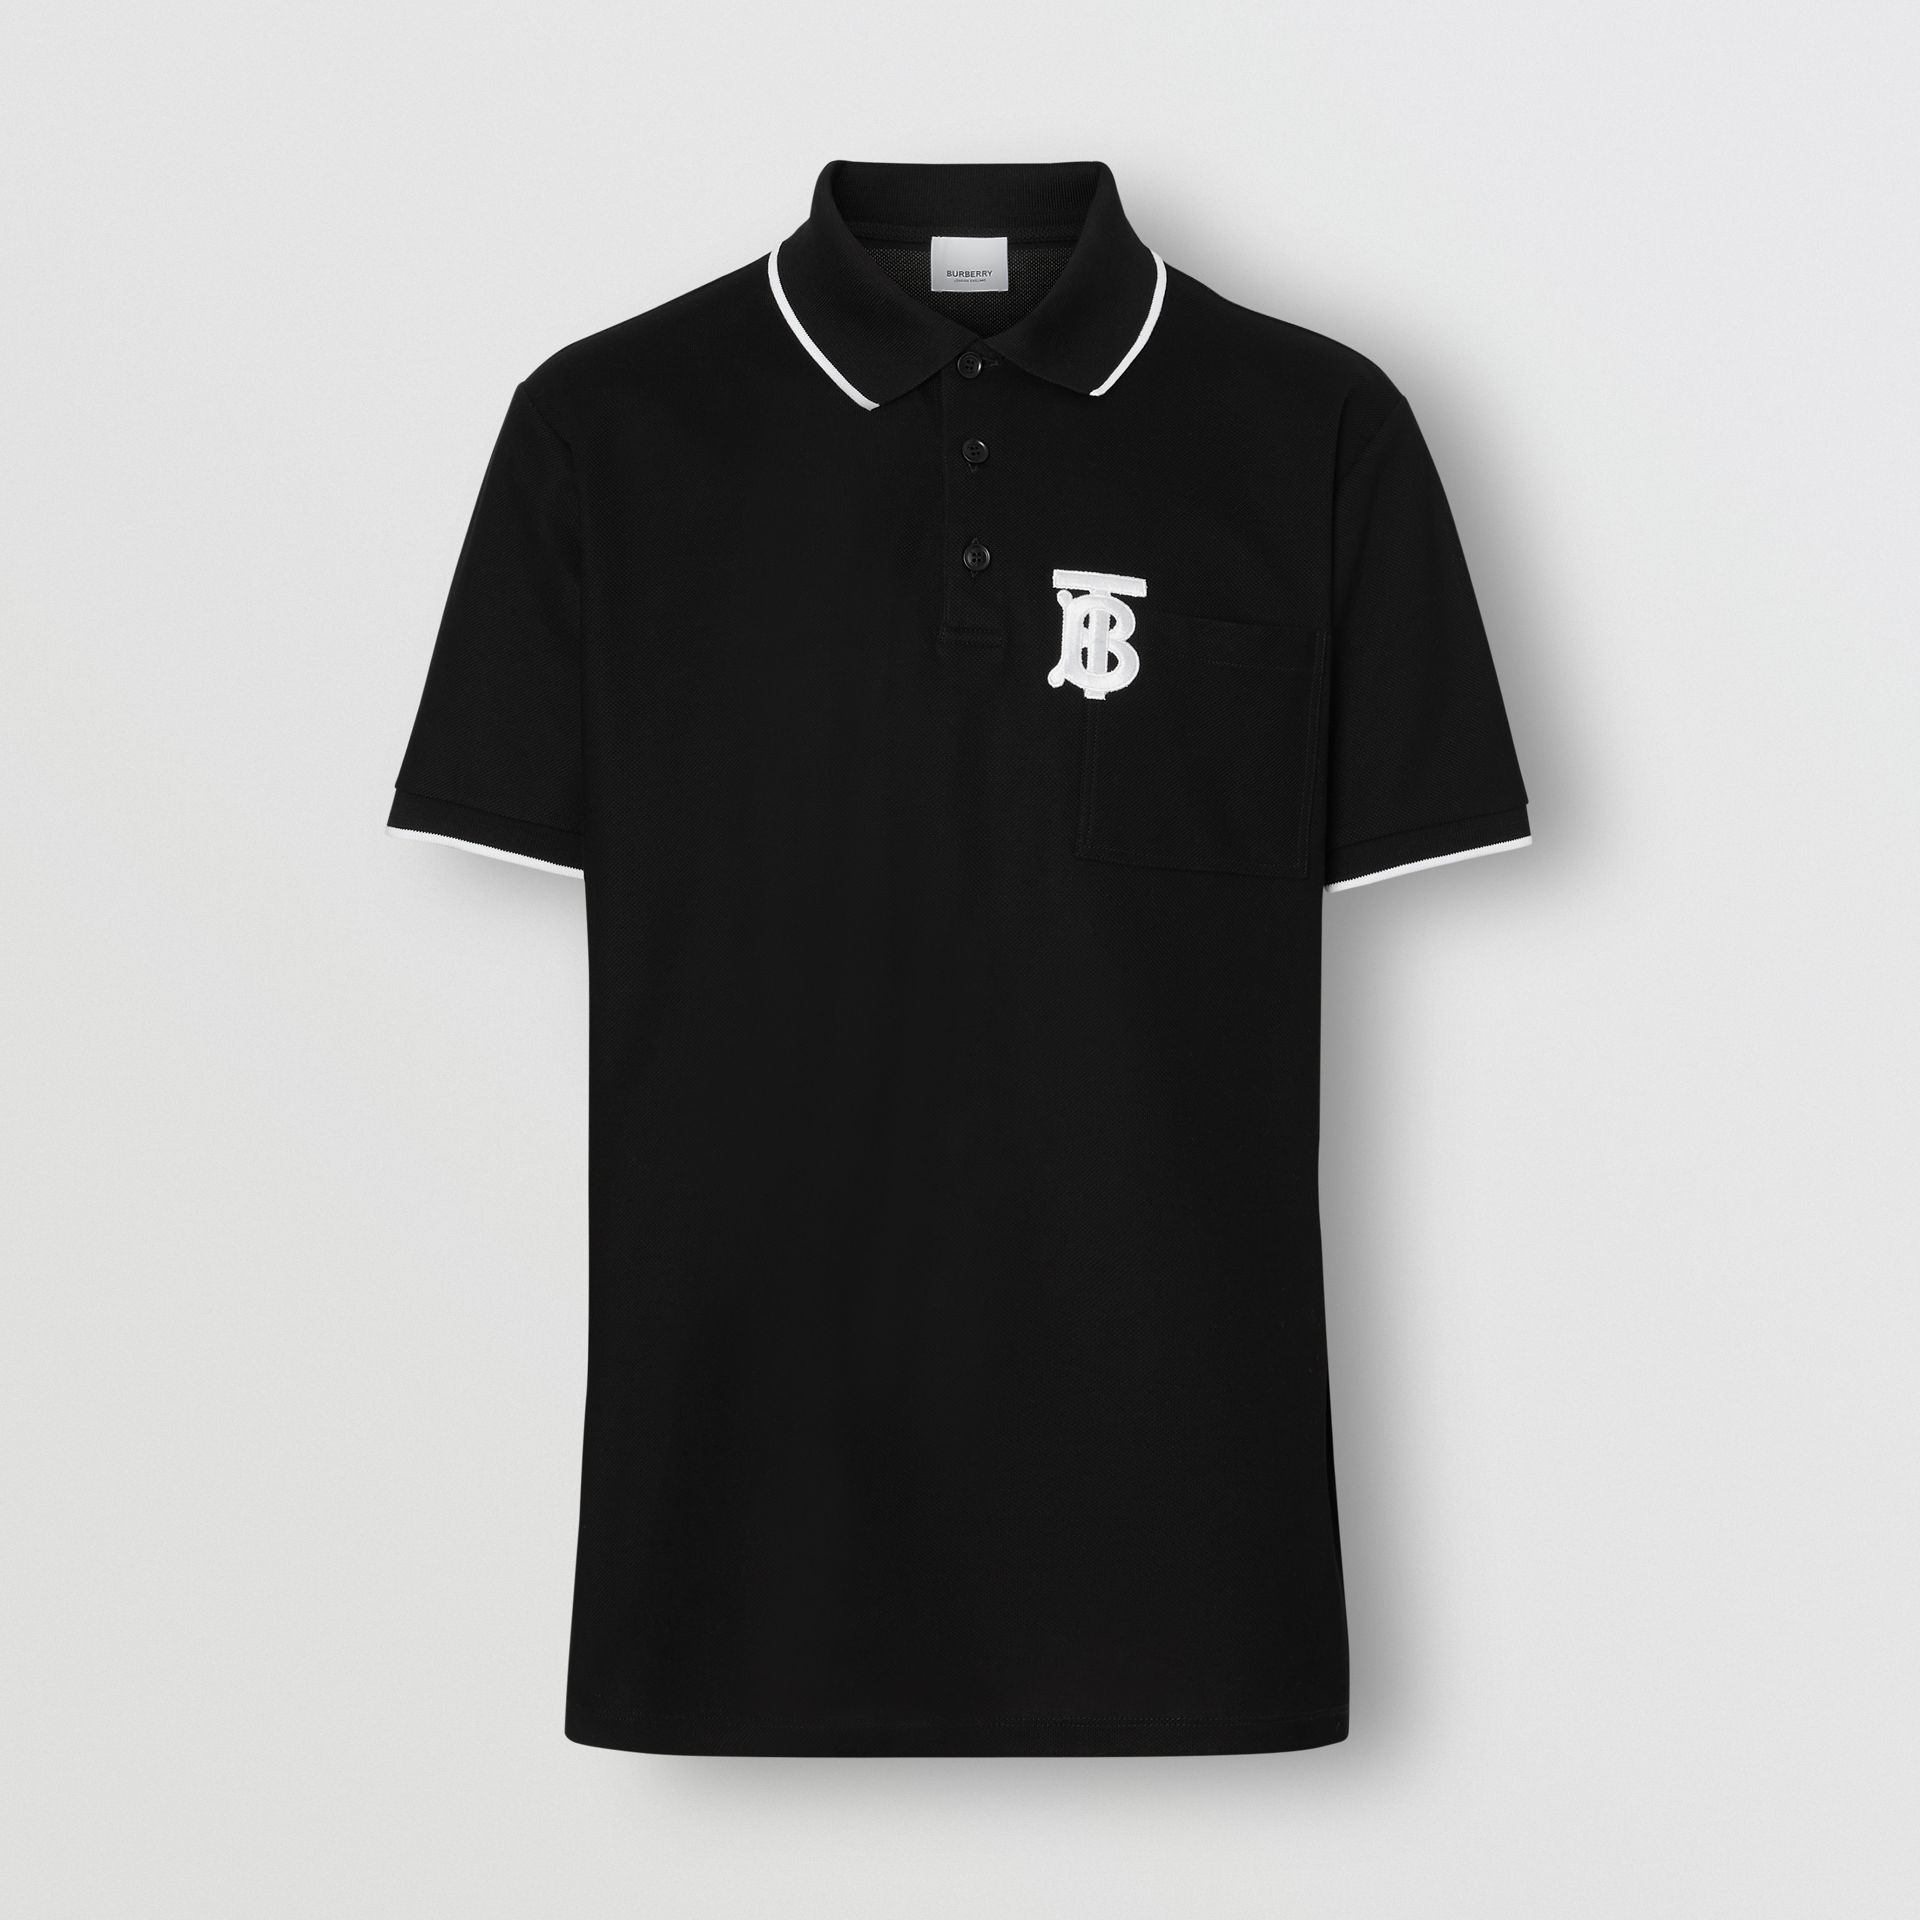 Monogram Motif Tipped Cotton Piqué Polo Shirt in Black - Men | Burberry Australia - gallery image 3